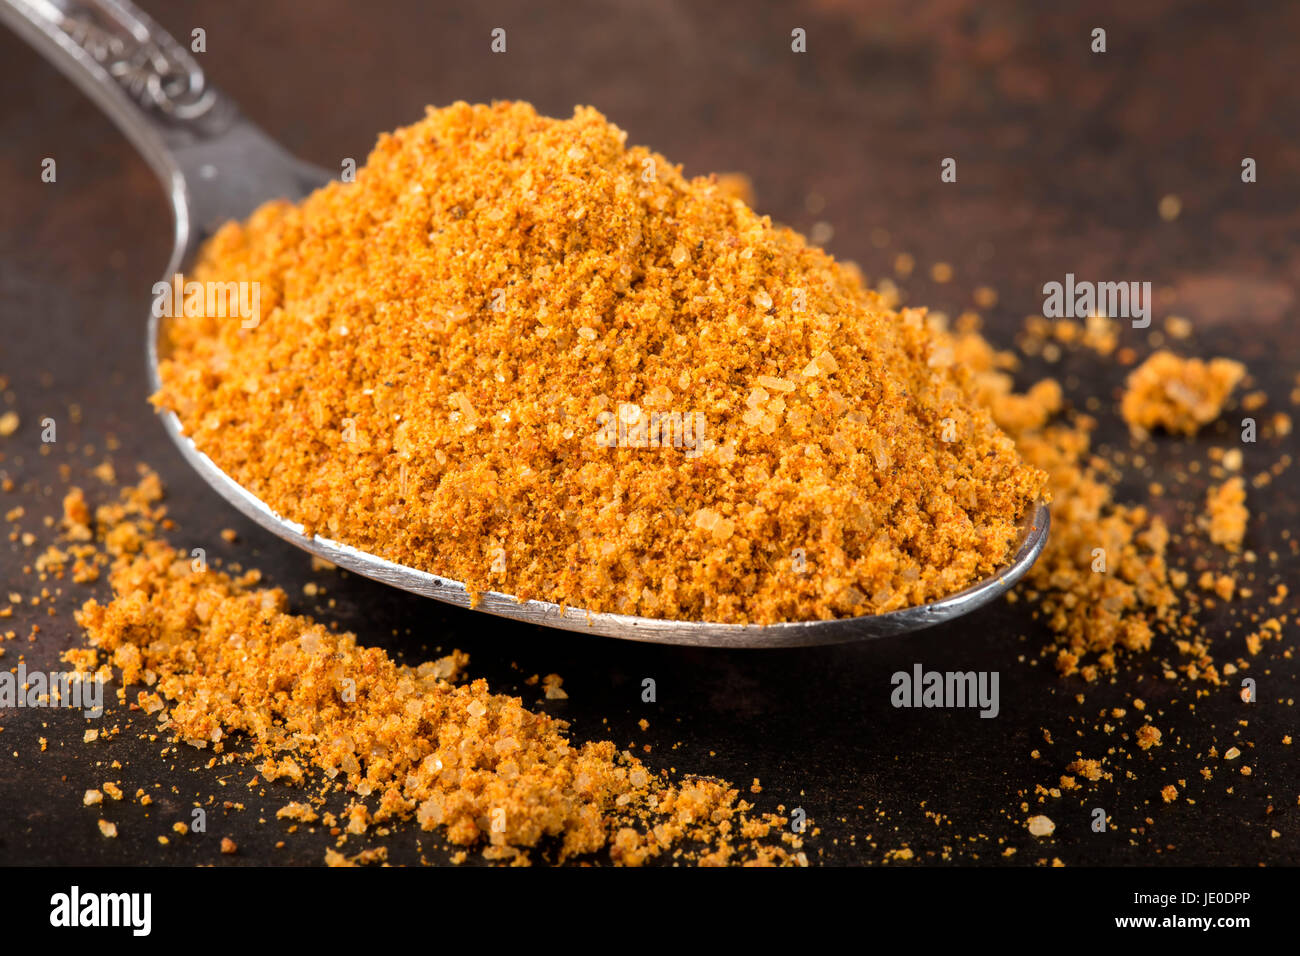 Spoon filled with spices for the preparation of roast on rusty background Stock Photo